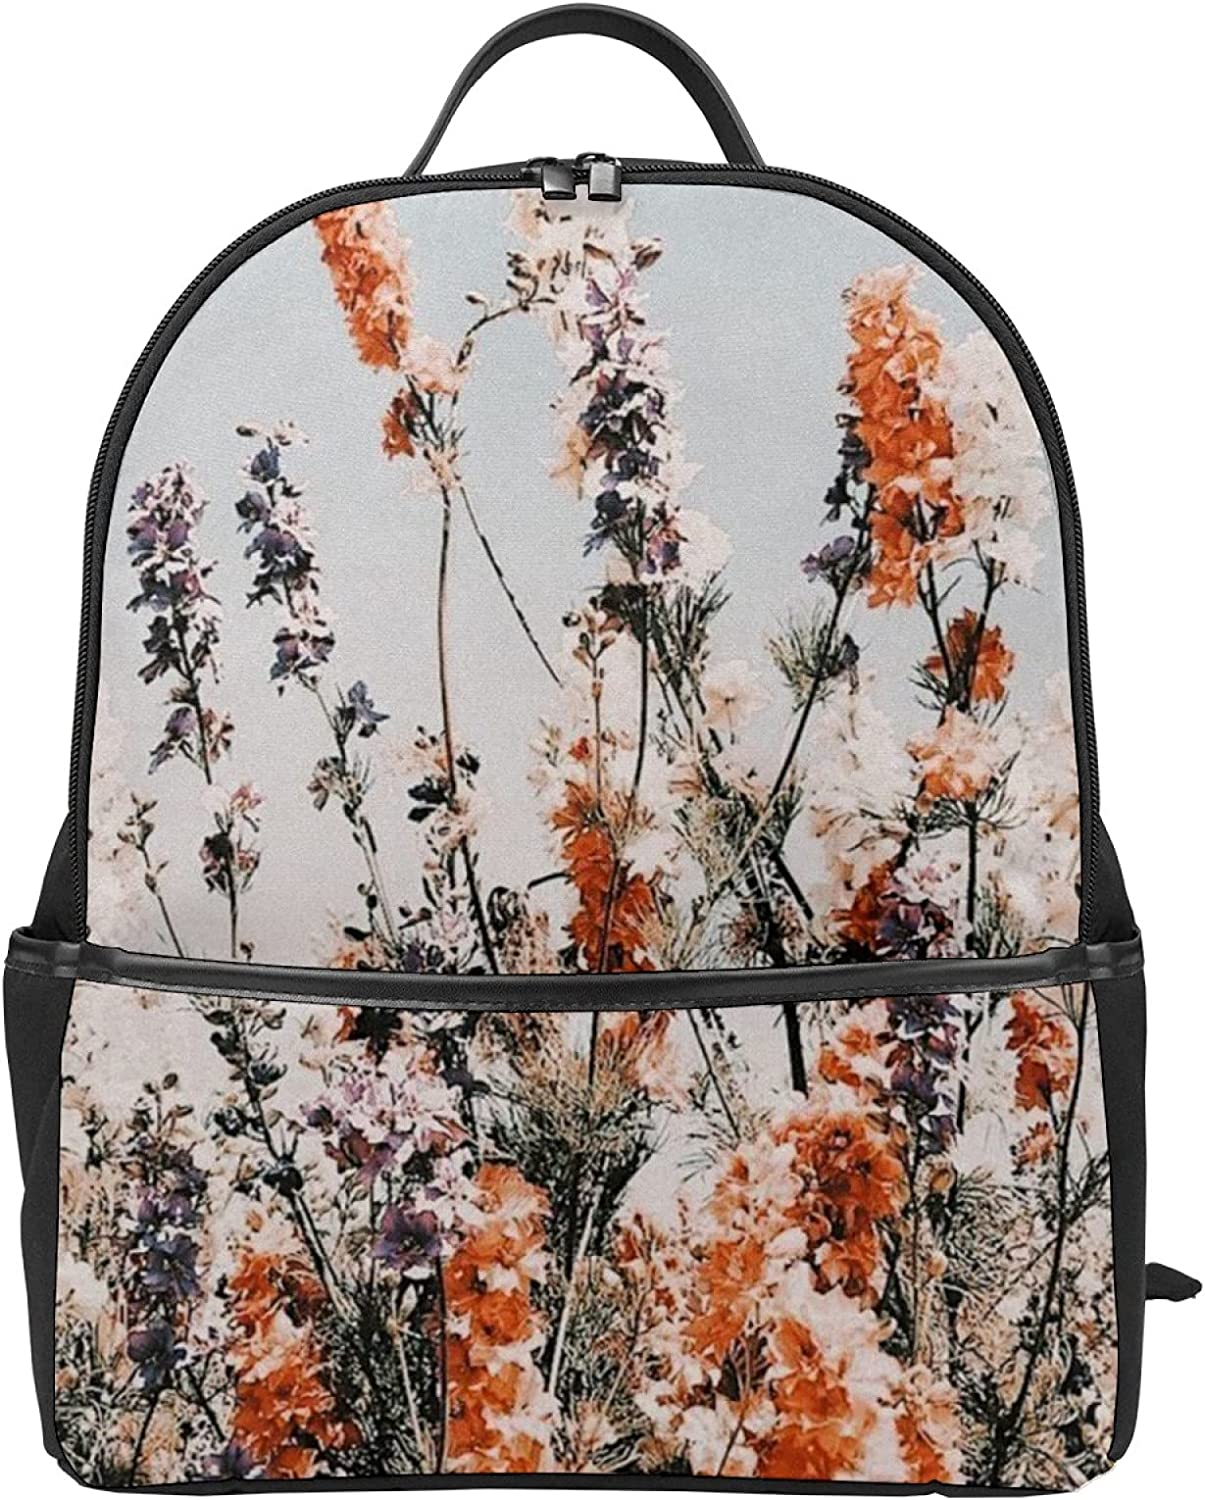 Super Max 56% OFF special price Aesthetic Flowers3D printing backpack Ba Canvas cartoon